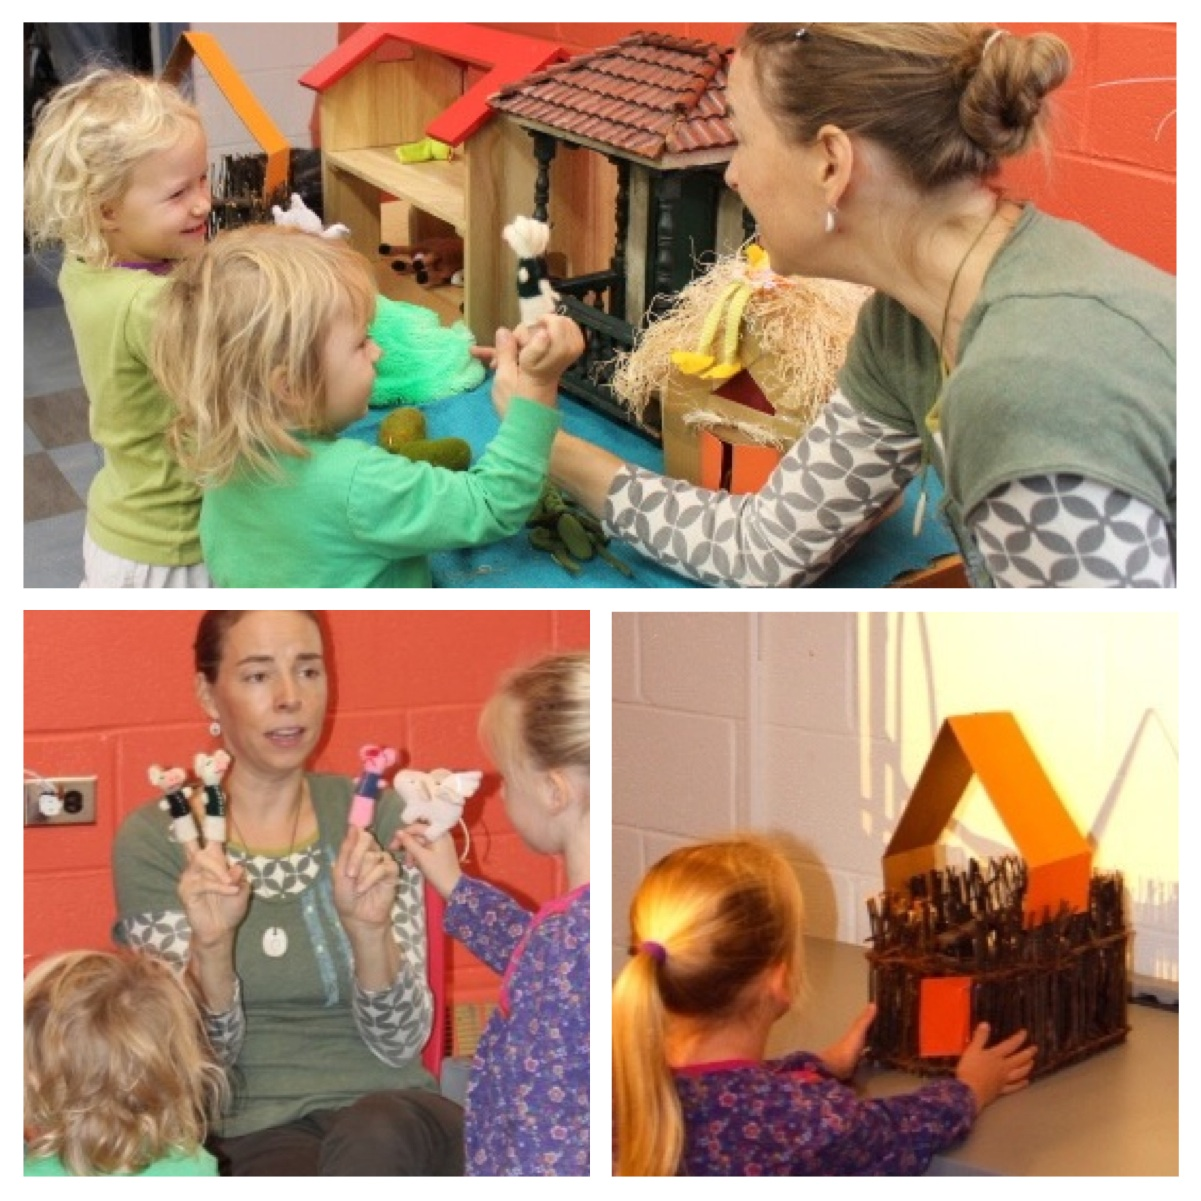 After the puppet show, the neighborhood is open for business as a children's puppet show: children are invited to choose puppets, handle the props, move around houses and engage in a new conversation with the wolf about how to make friends.